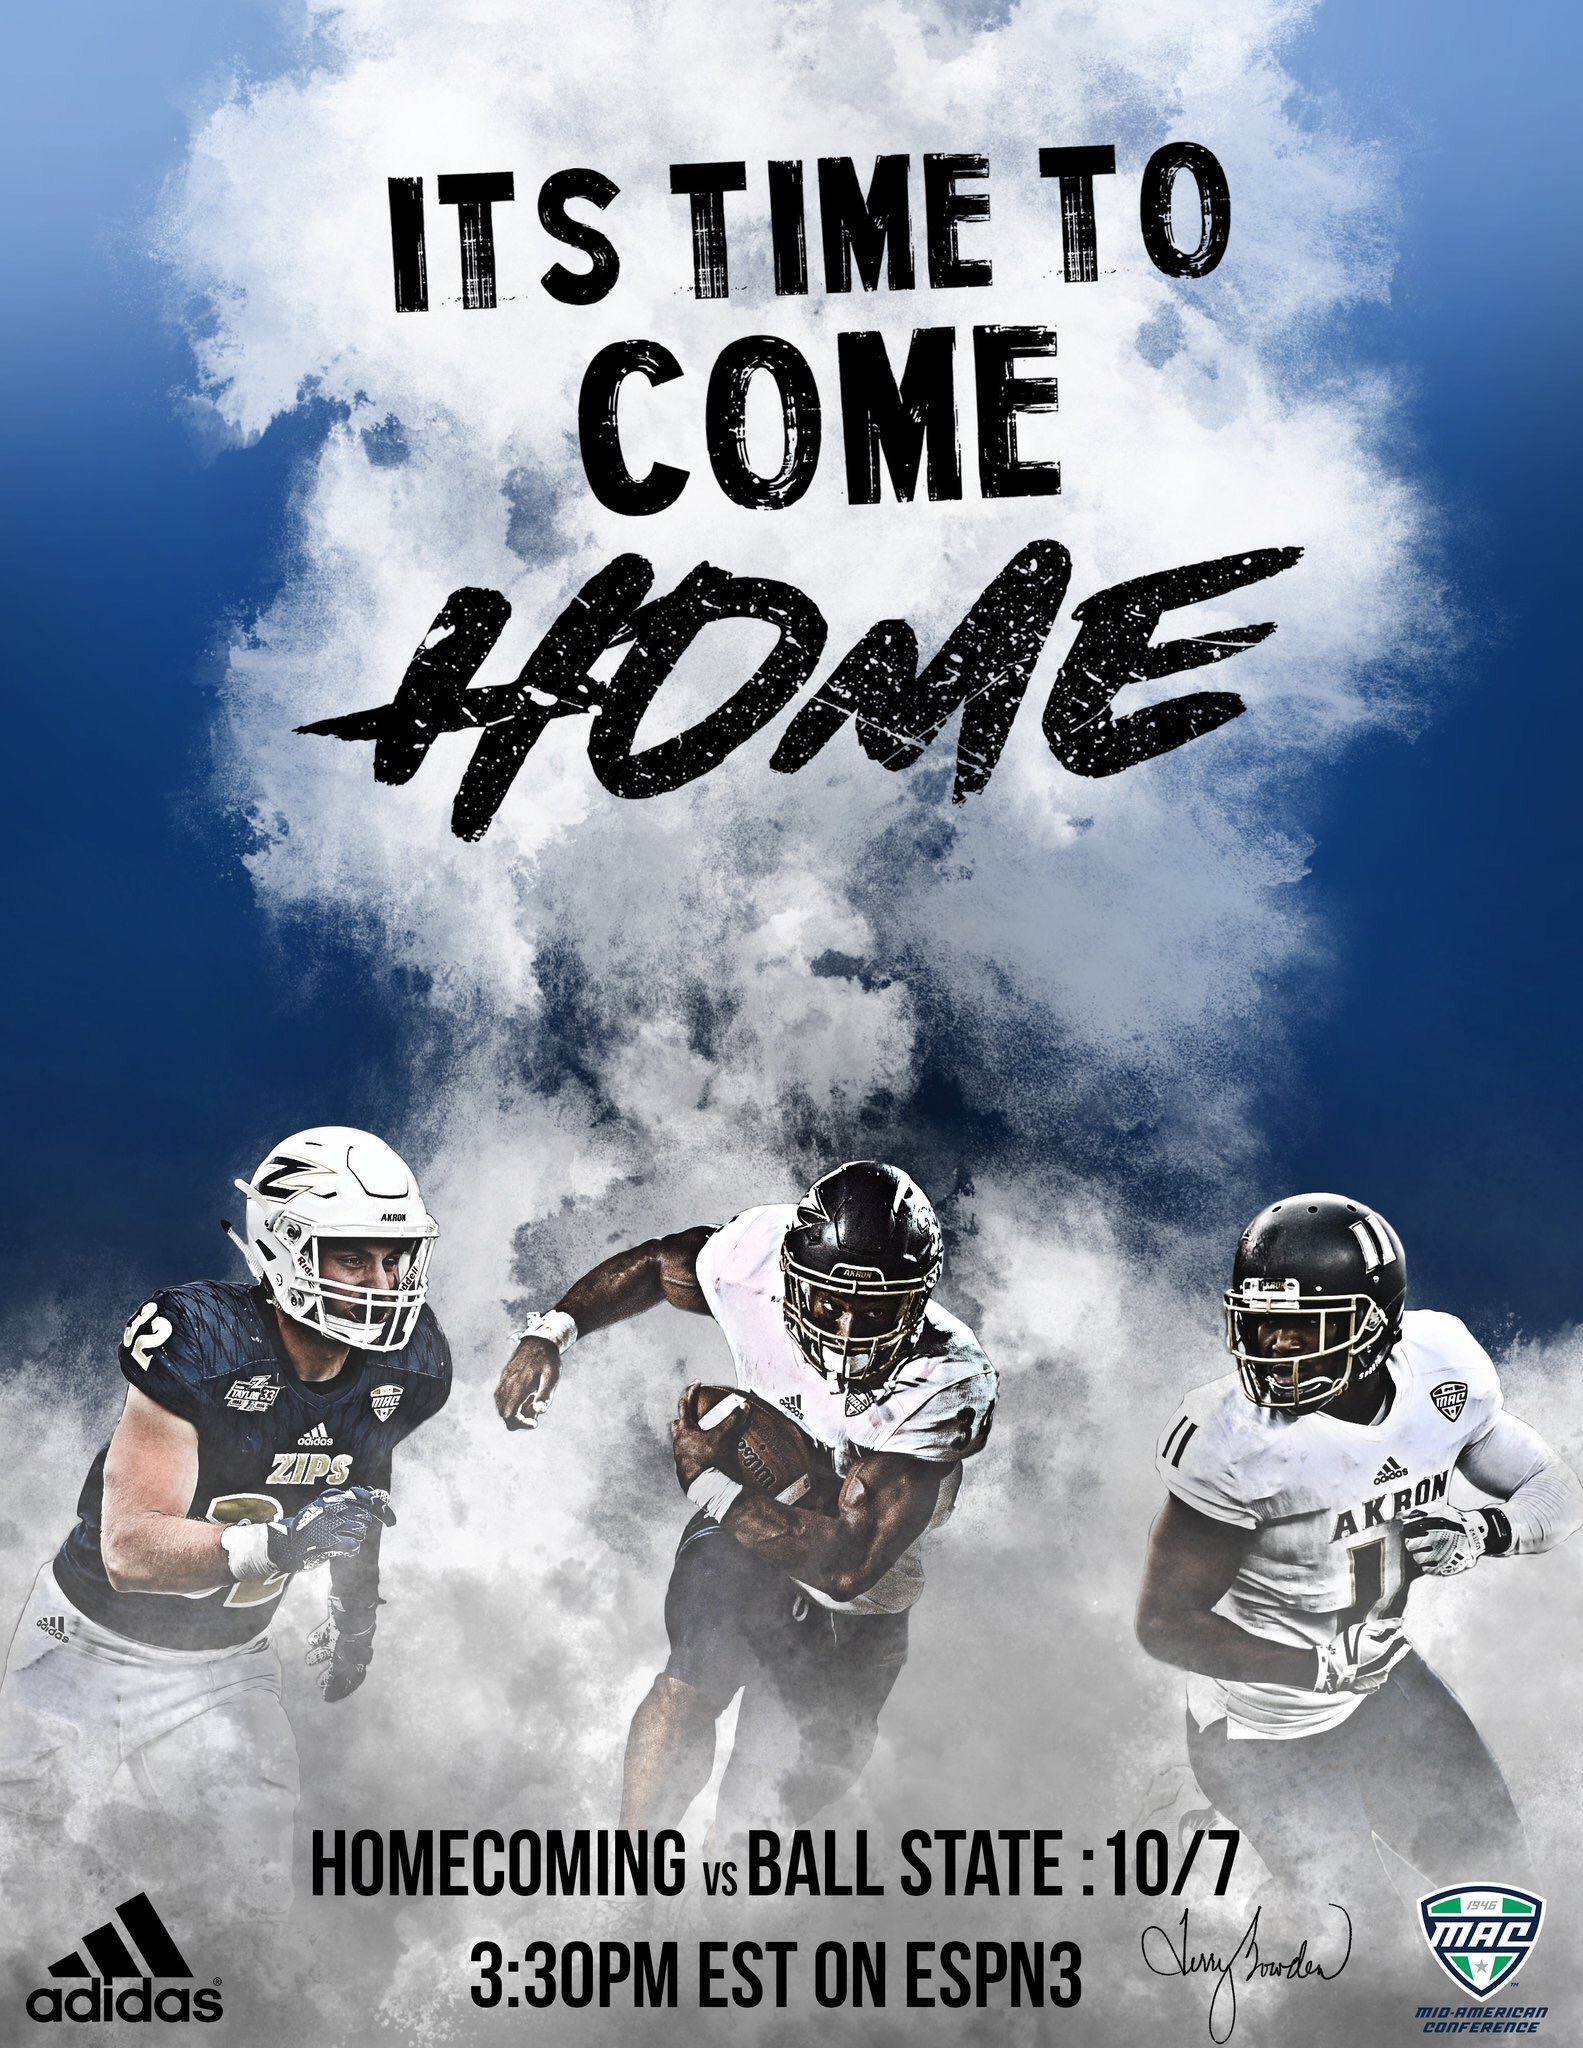 Can't wait to GATA in some MAC action today! #ItsHomecoming!! #GoZips #DHM https://t.co/pnmZLoLRZ5